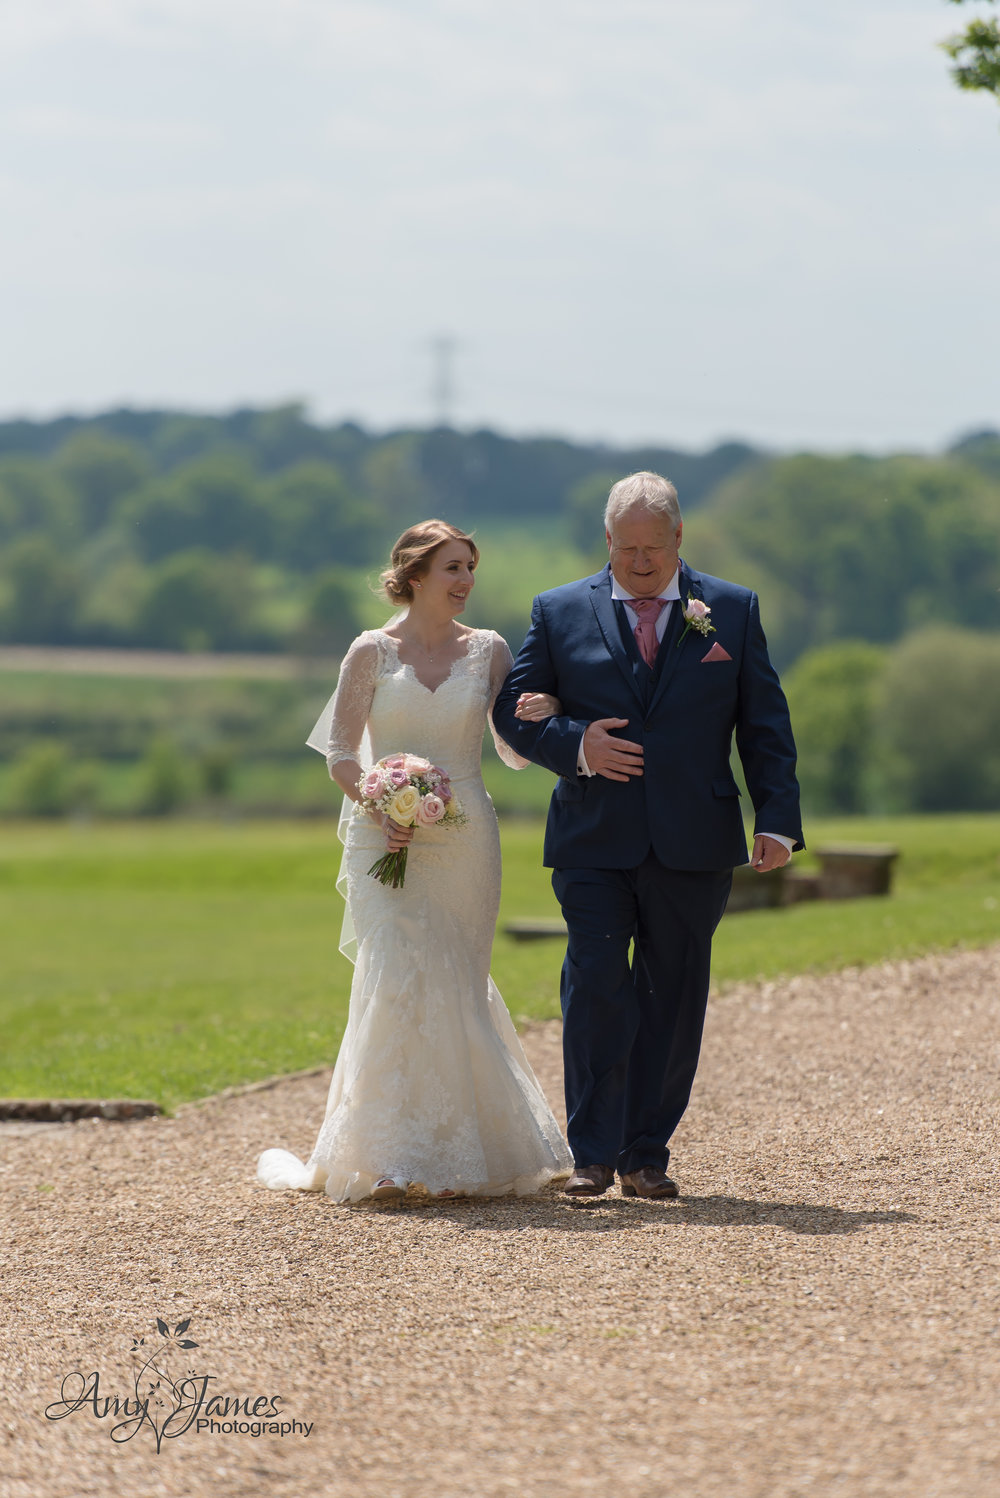 Hampsire Wedding Photographer | Fleet Wedding Photographer | Highfield Park Wedding Venue | Highfield Park Wedding Photographer | Amy James Photography